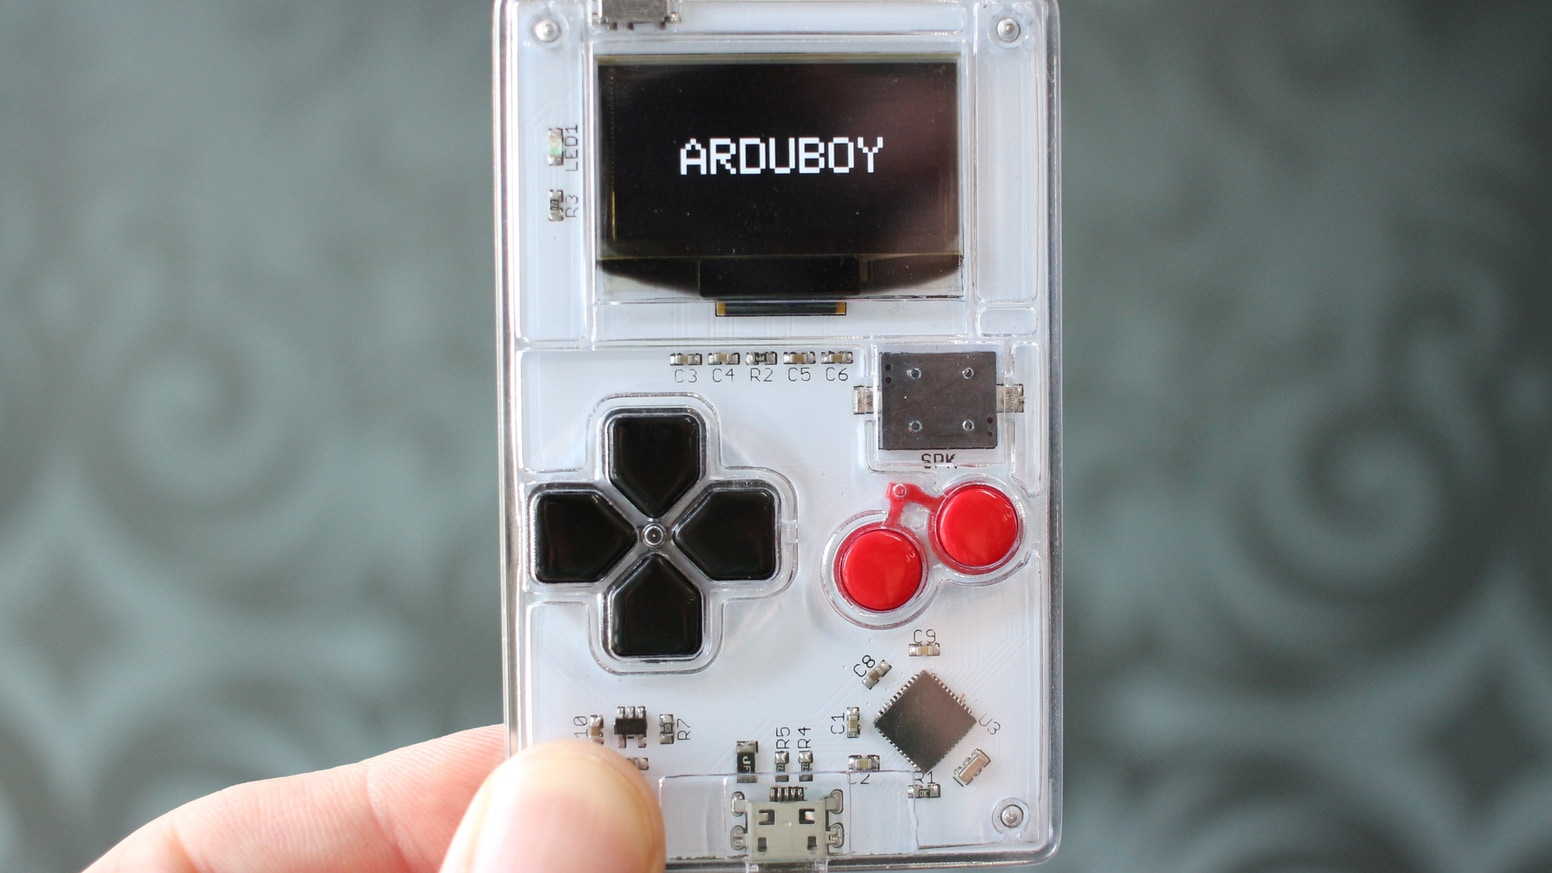 Arduboy, the game system the size of a credit card. The easiest way to play, make and share 8-bit games! Powered by Arduino!